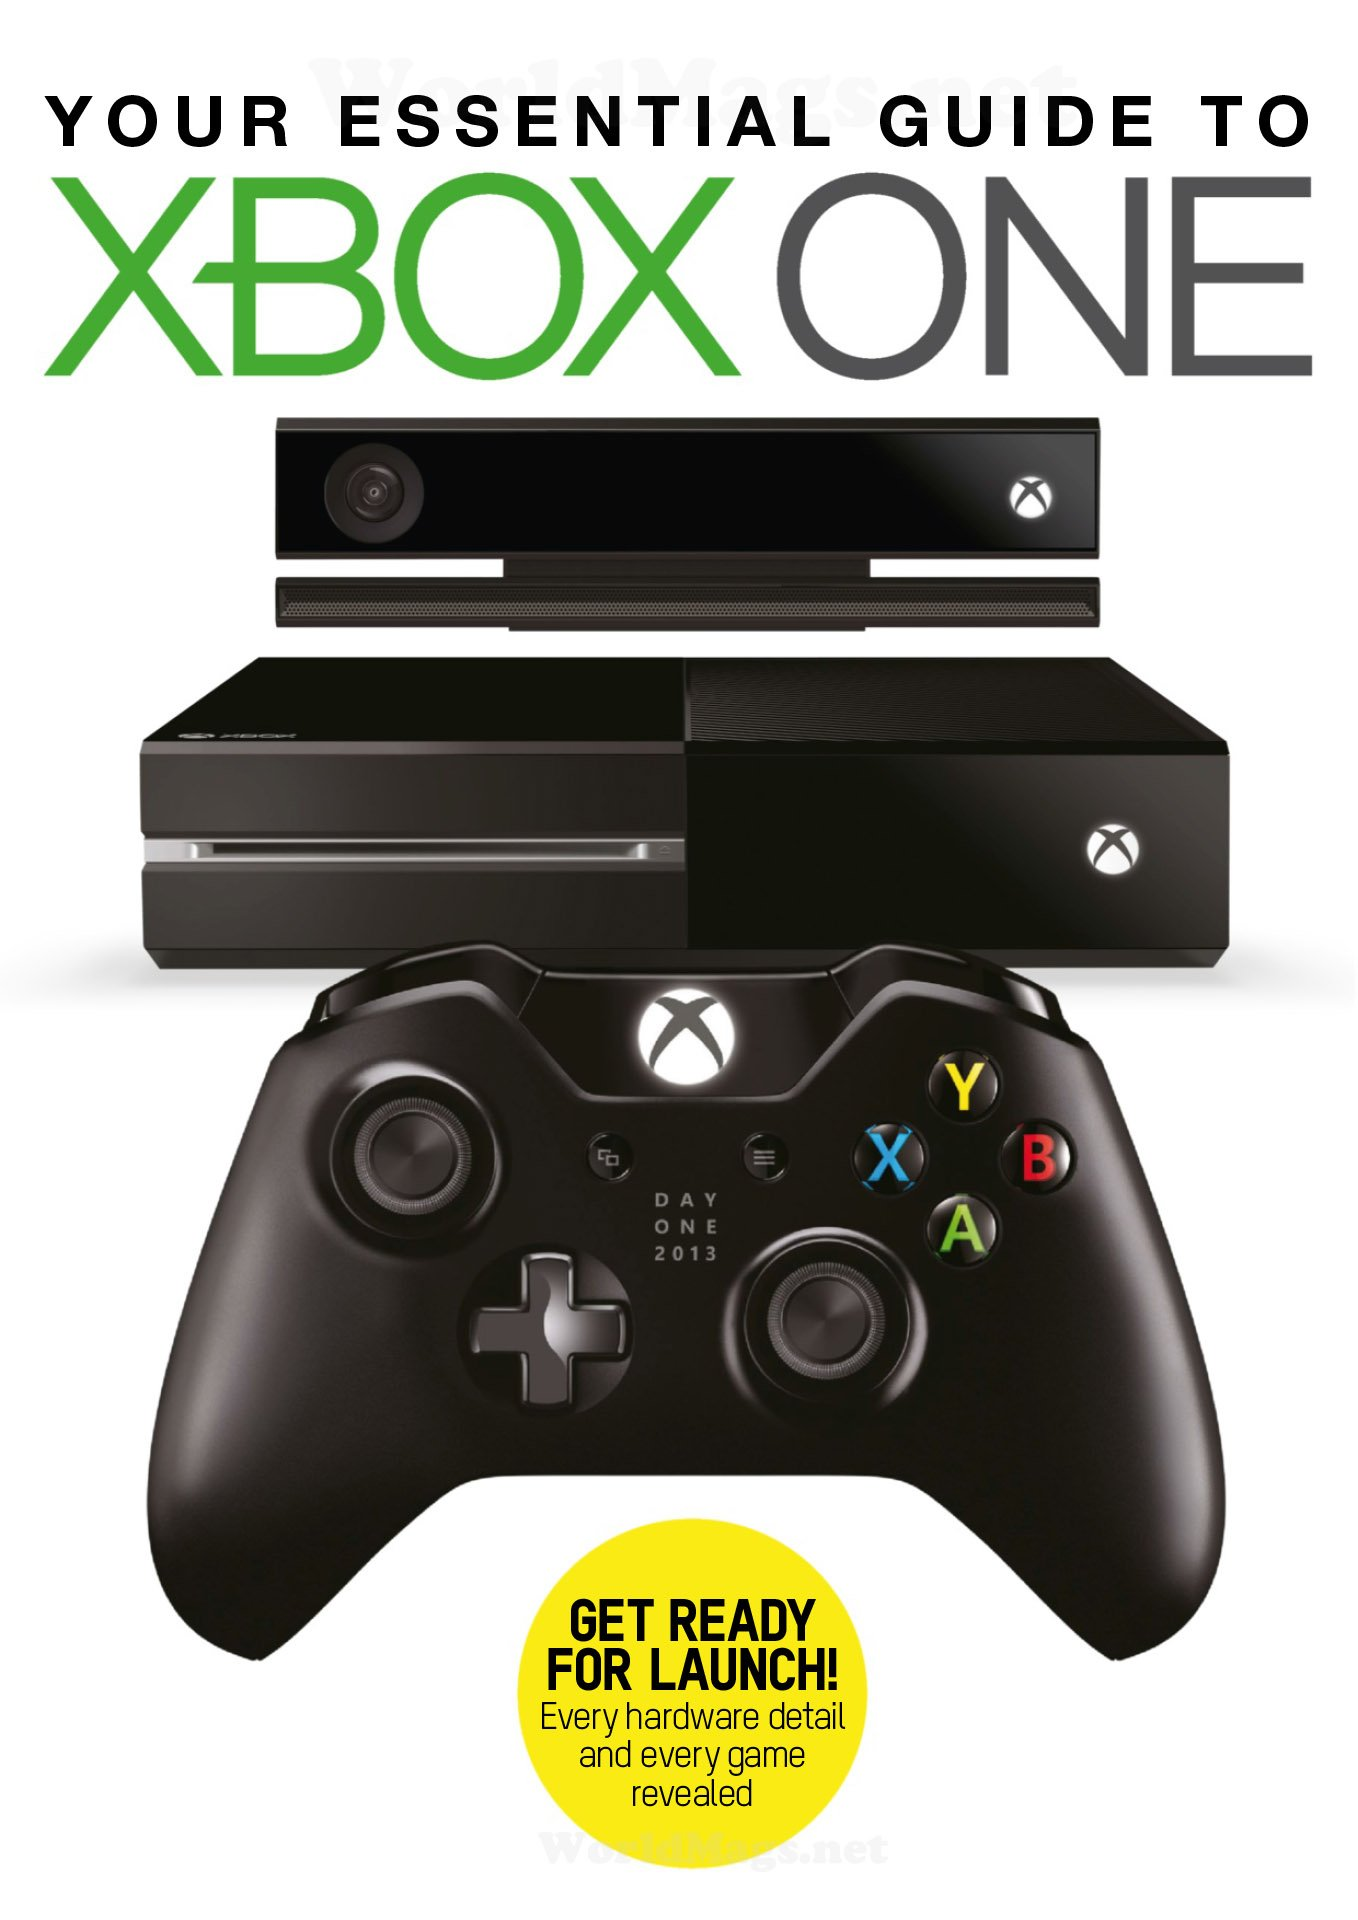 Your Essential Guide to Xbox One (December 2013)